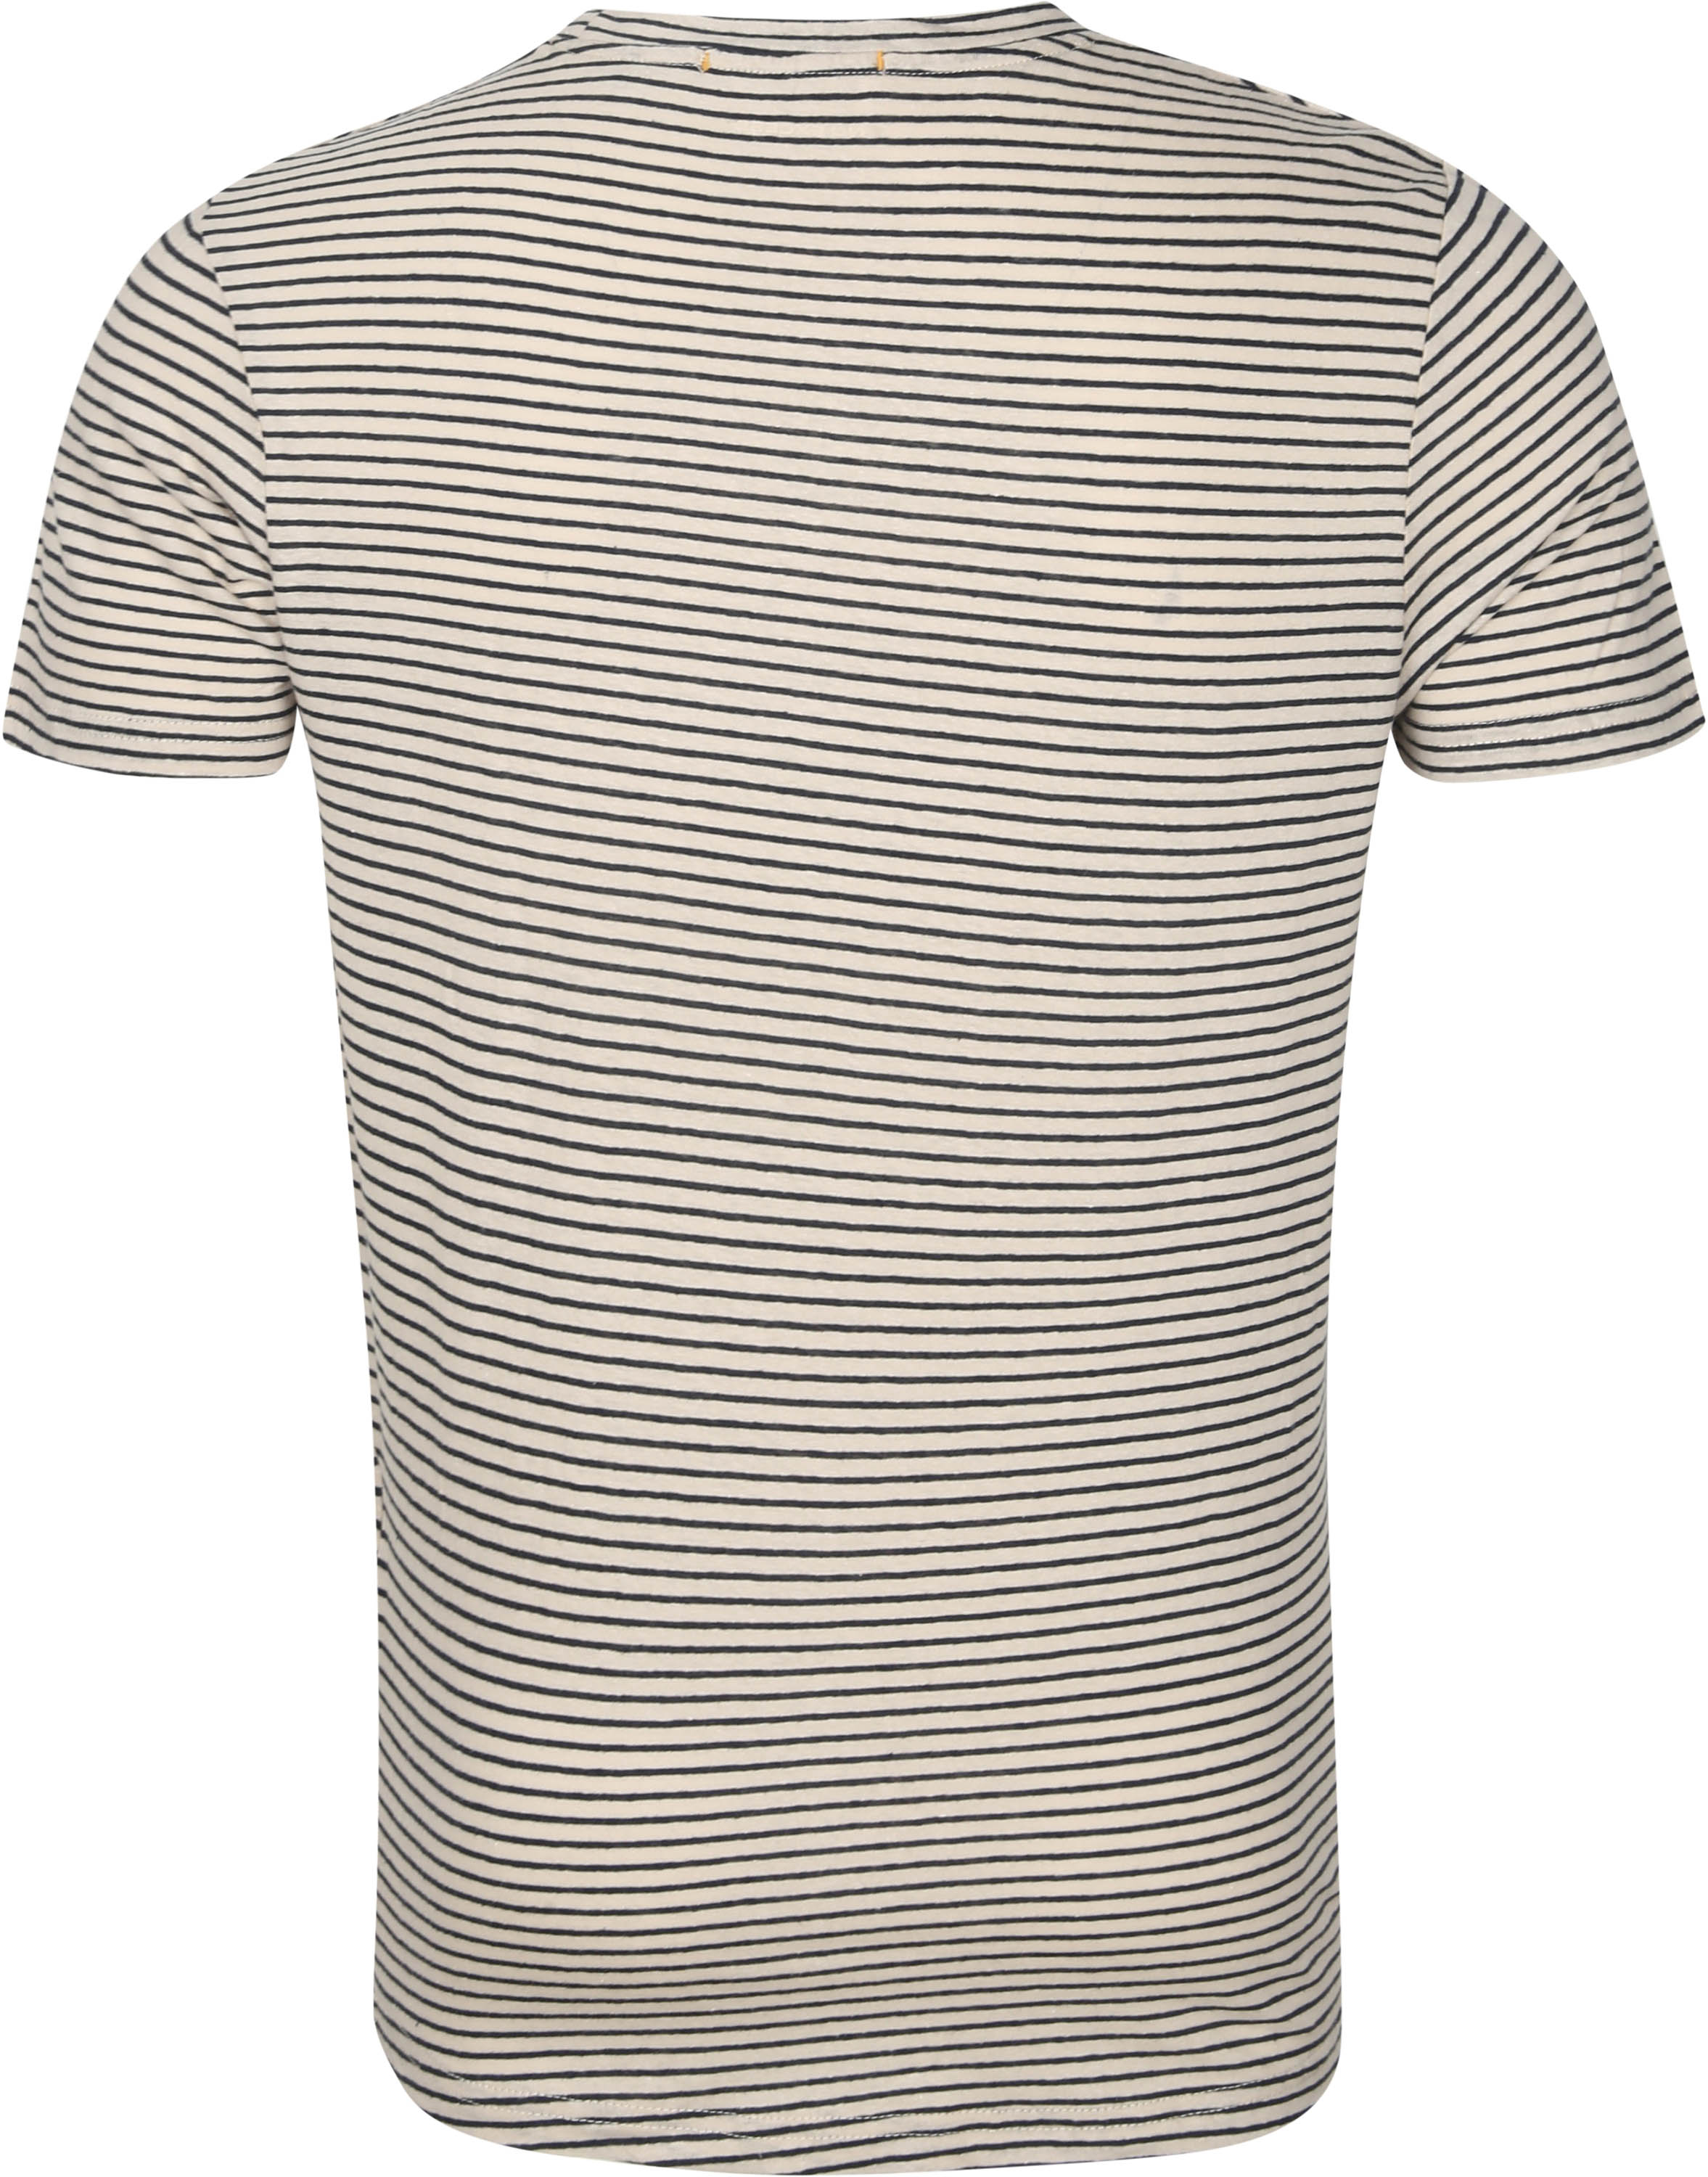 No-Excess T-Shirt Strepen Yarn Dye Beige